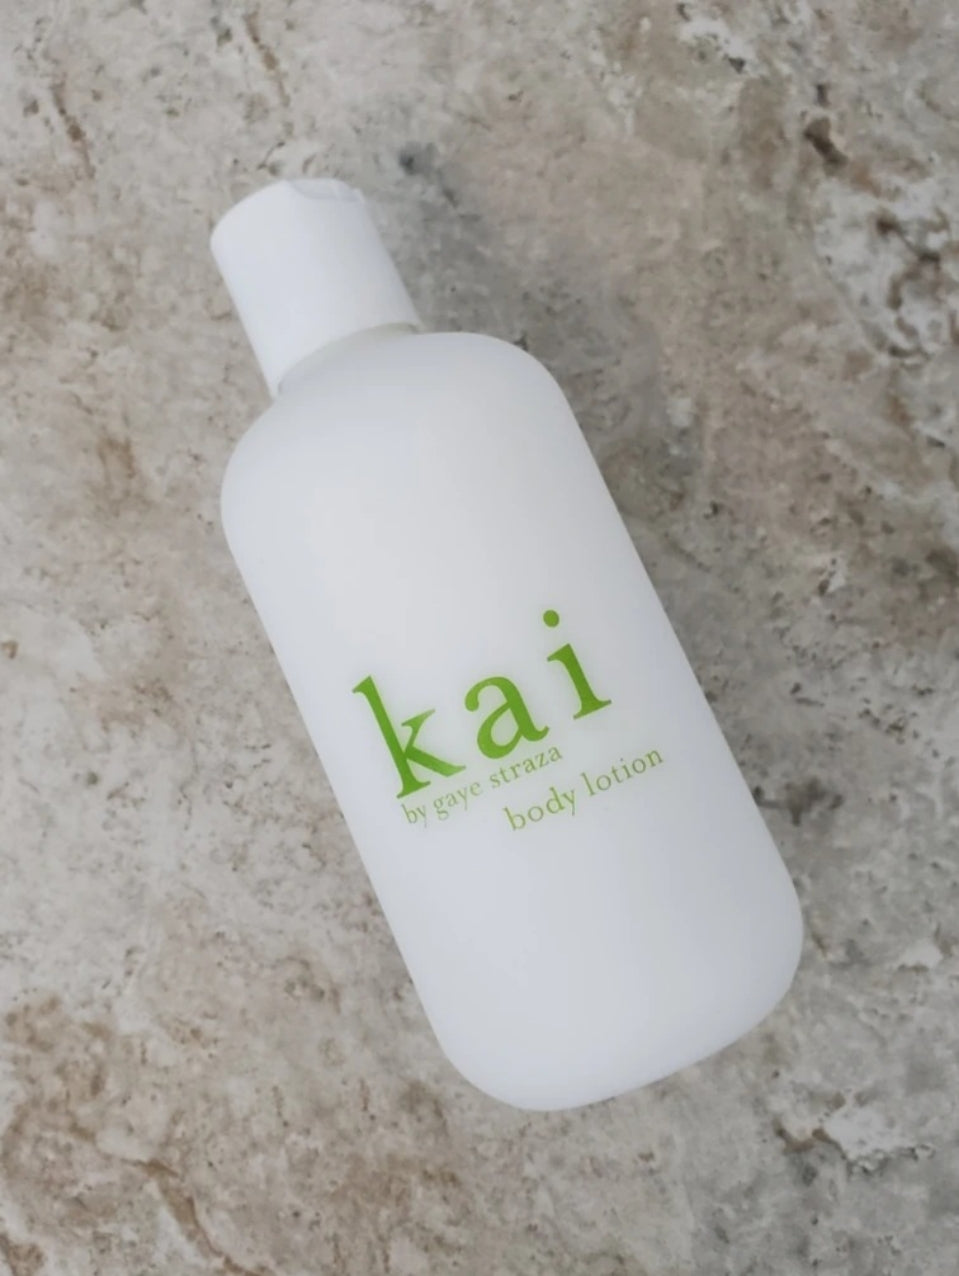 kai body lotion